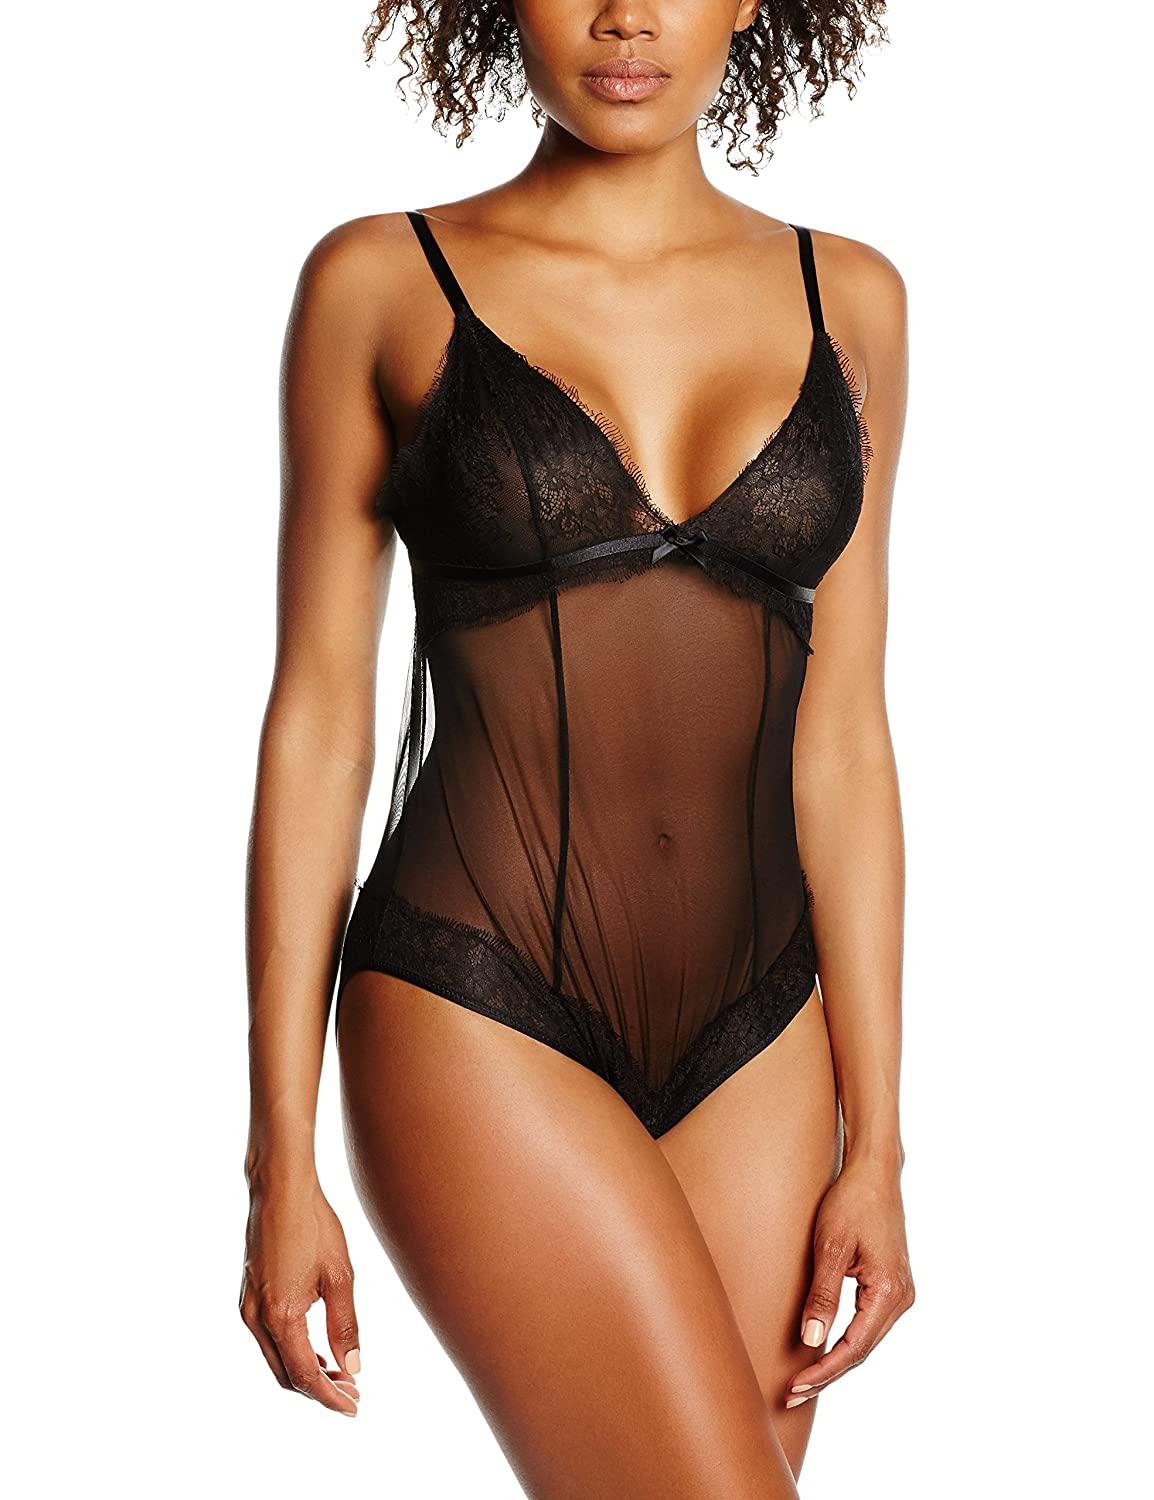 Maidenform Damen Formender Body Extra Sexy Eyelash Lace-Unlined Lace & Mesh